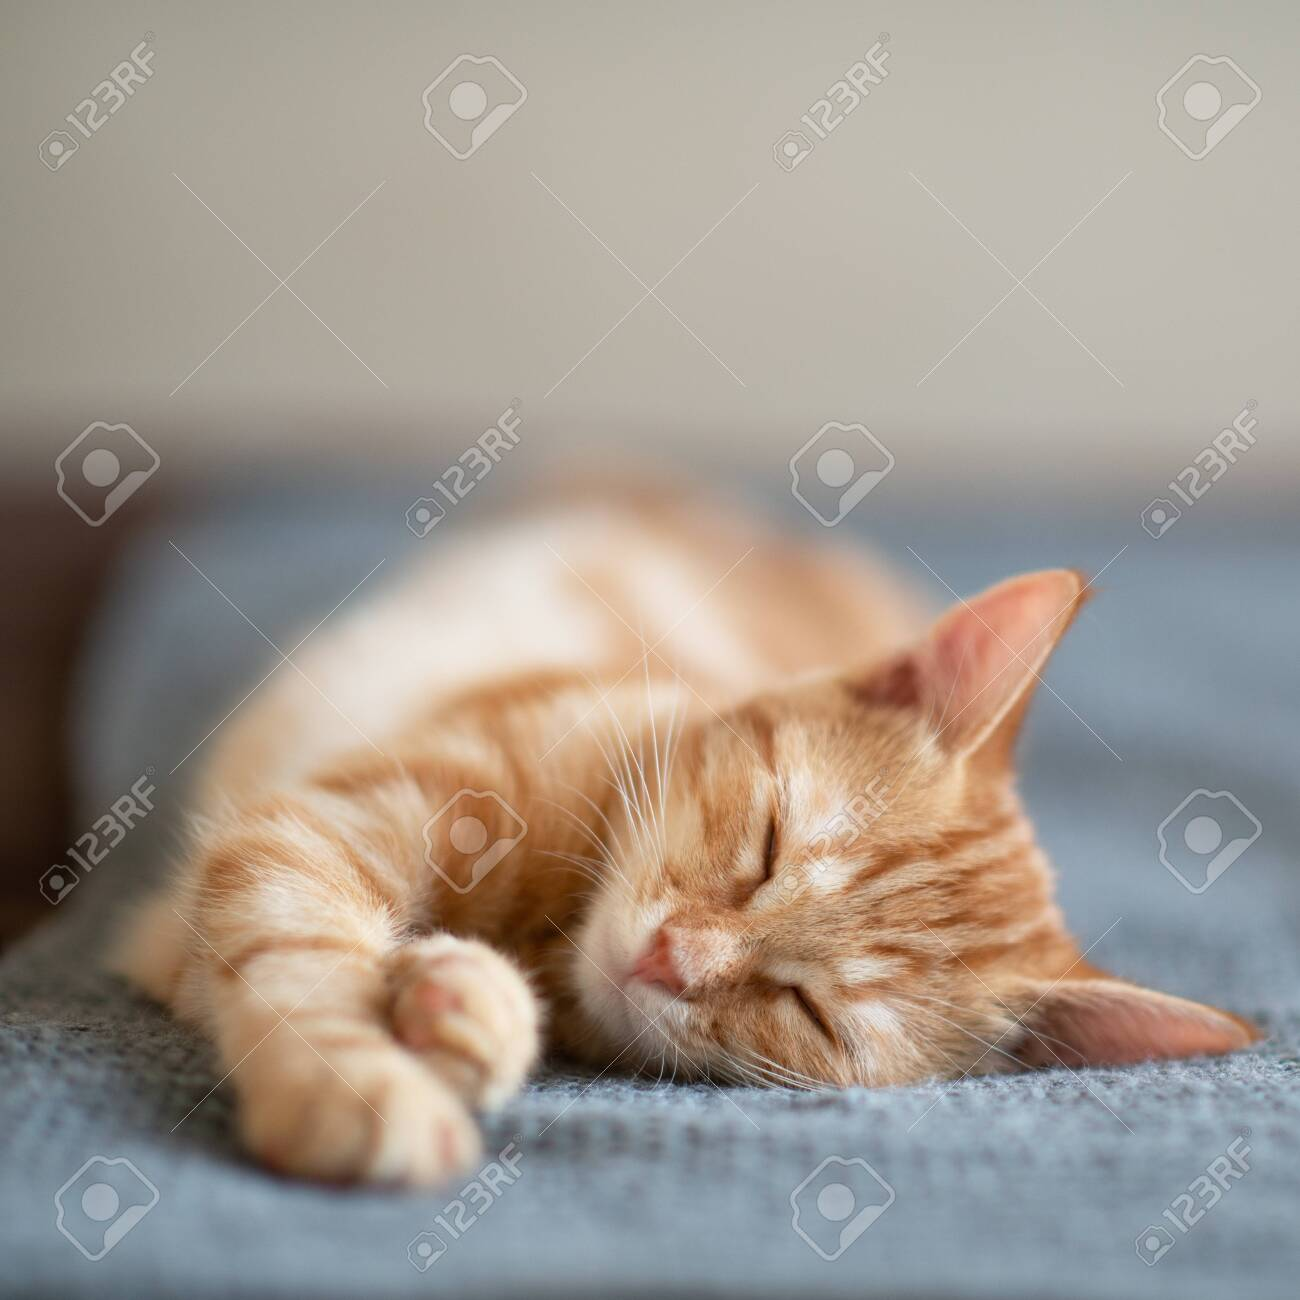 Cute red kitten with classic marble pattern sleeps on sofa. Adorable little pet. Cute child animal - 141757858